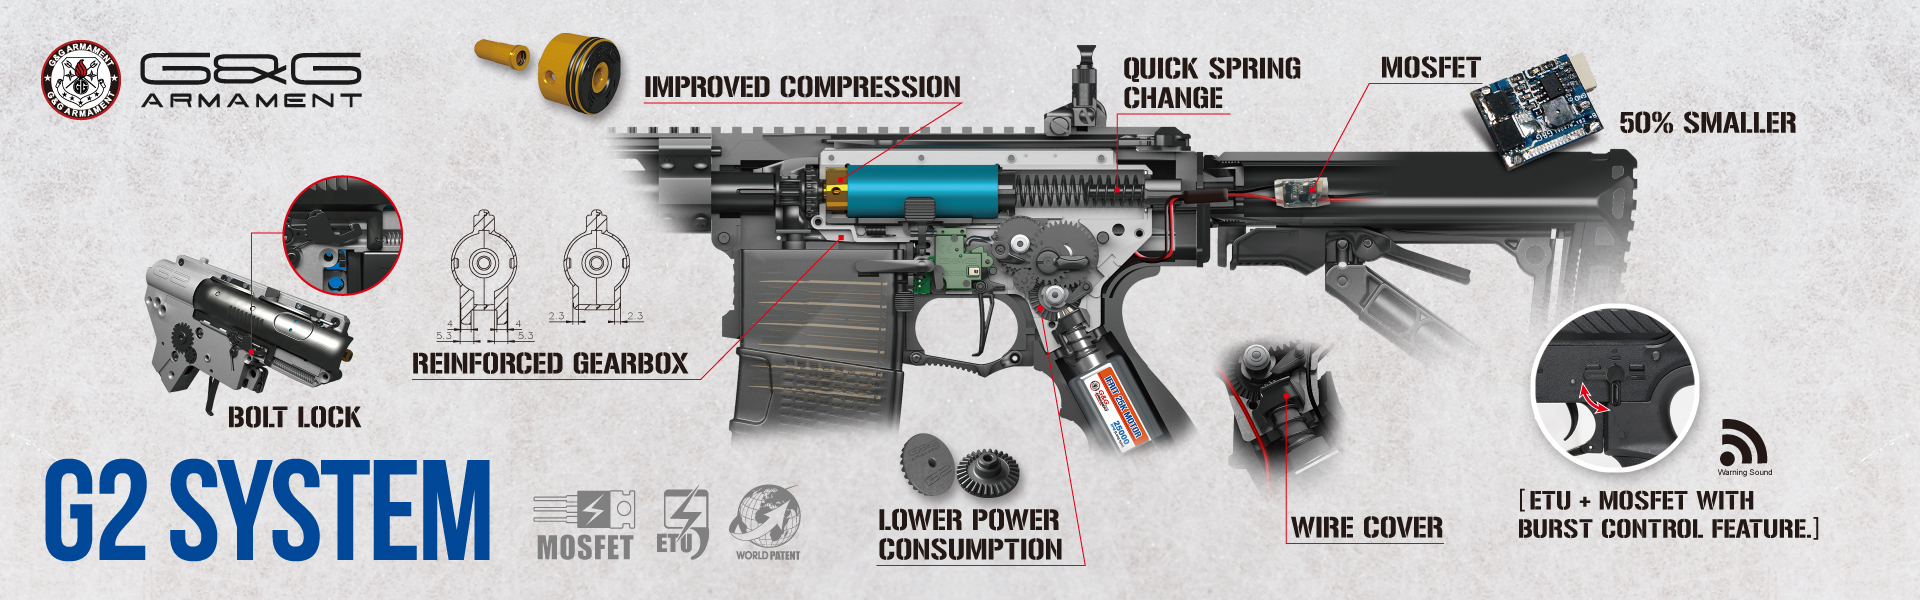 Performance Perfected — G&G Armament's G2 Gearbox